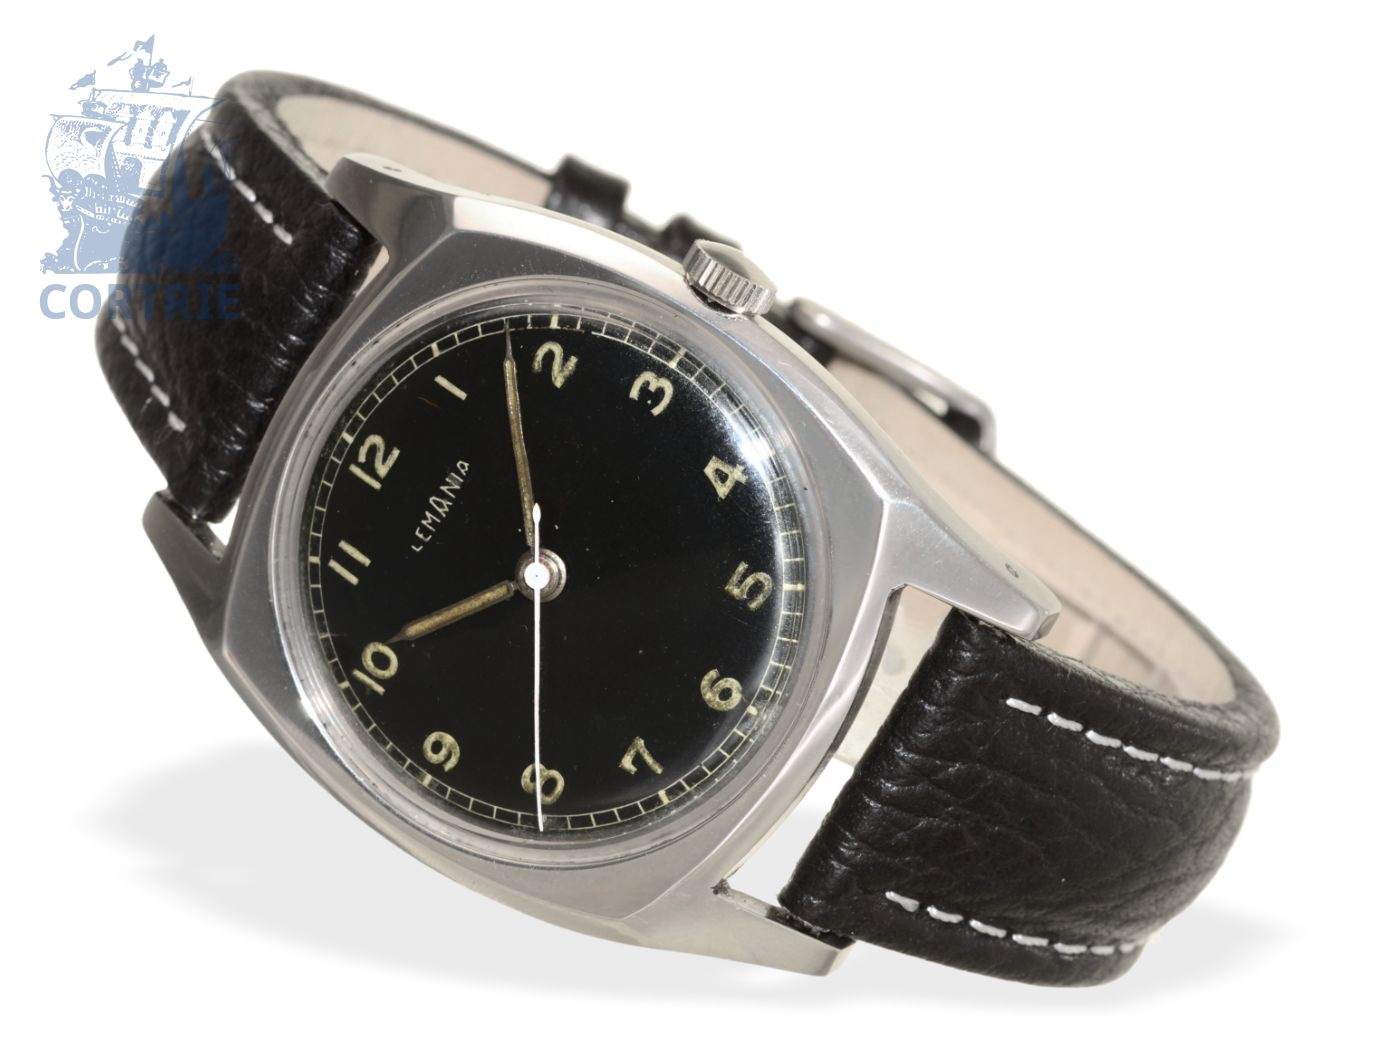 Wristwatch: rare Lemania pilot's watch from the 40s-